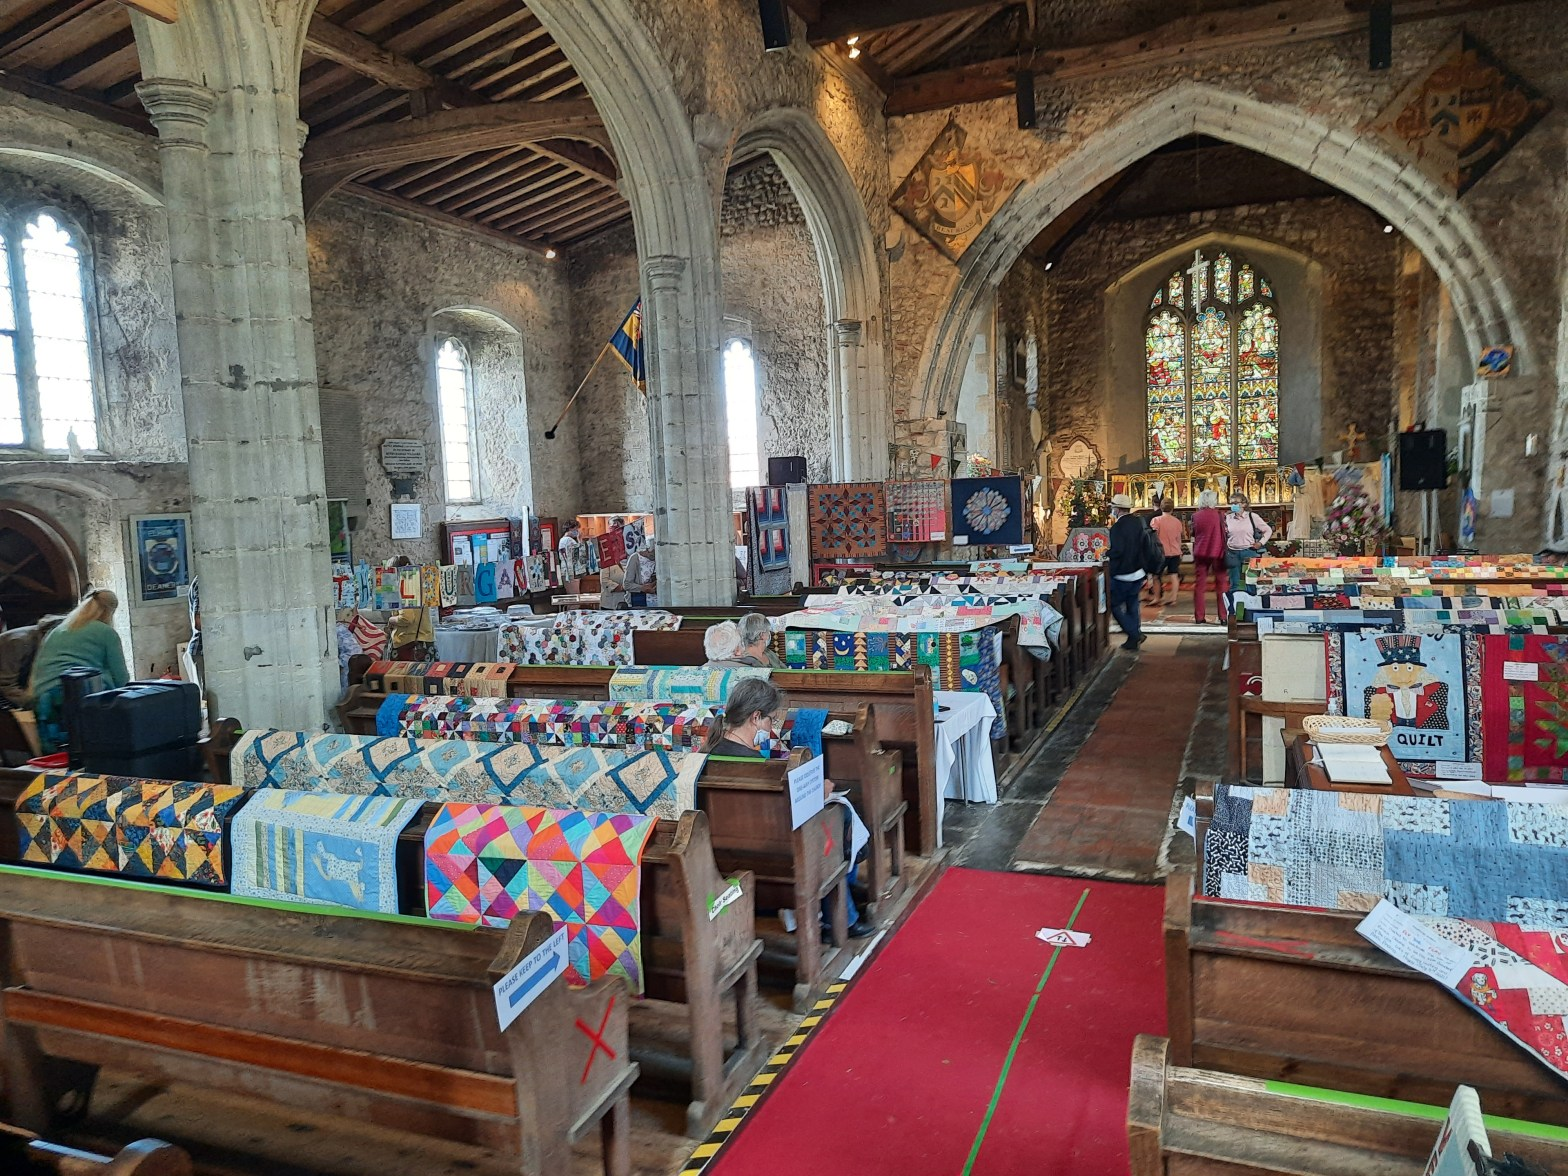 The interior of a church being used for Ethelburga's quilt show, Lyminge, 2021